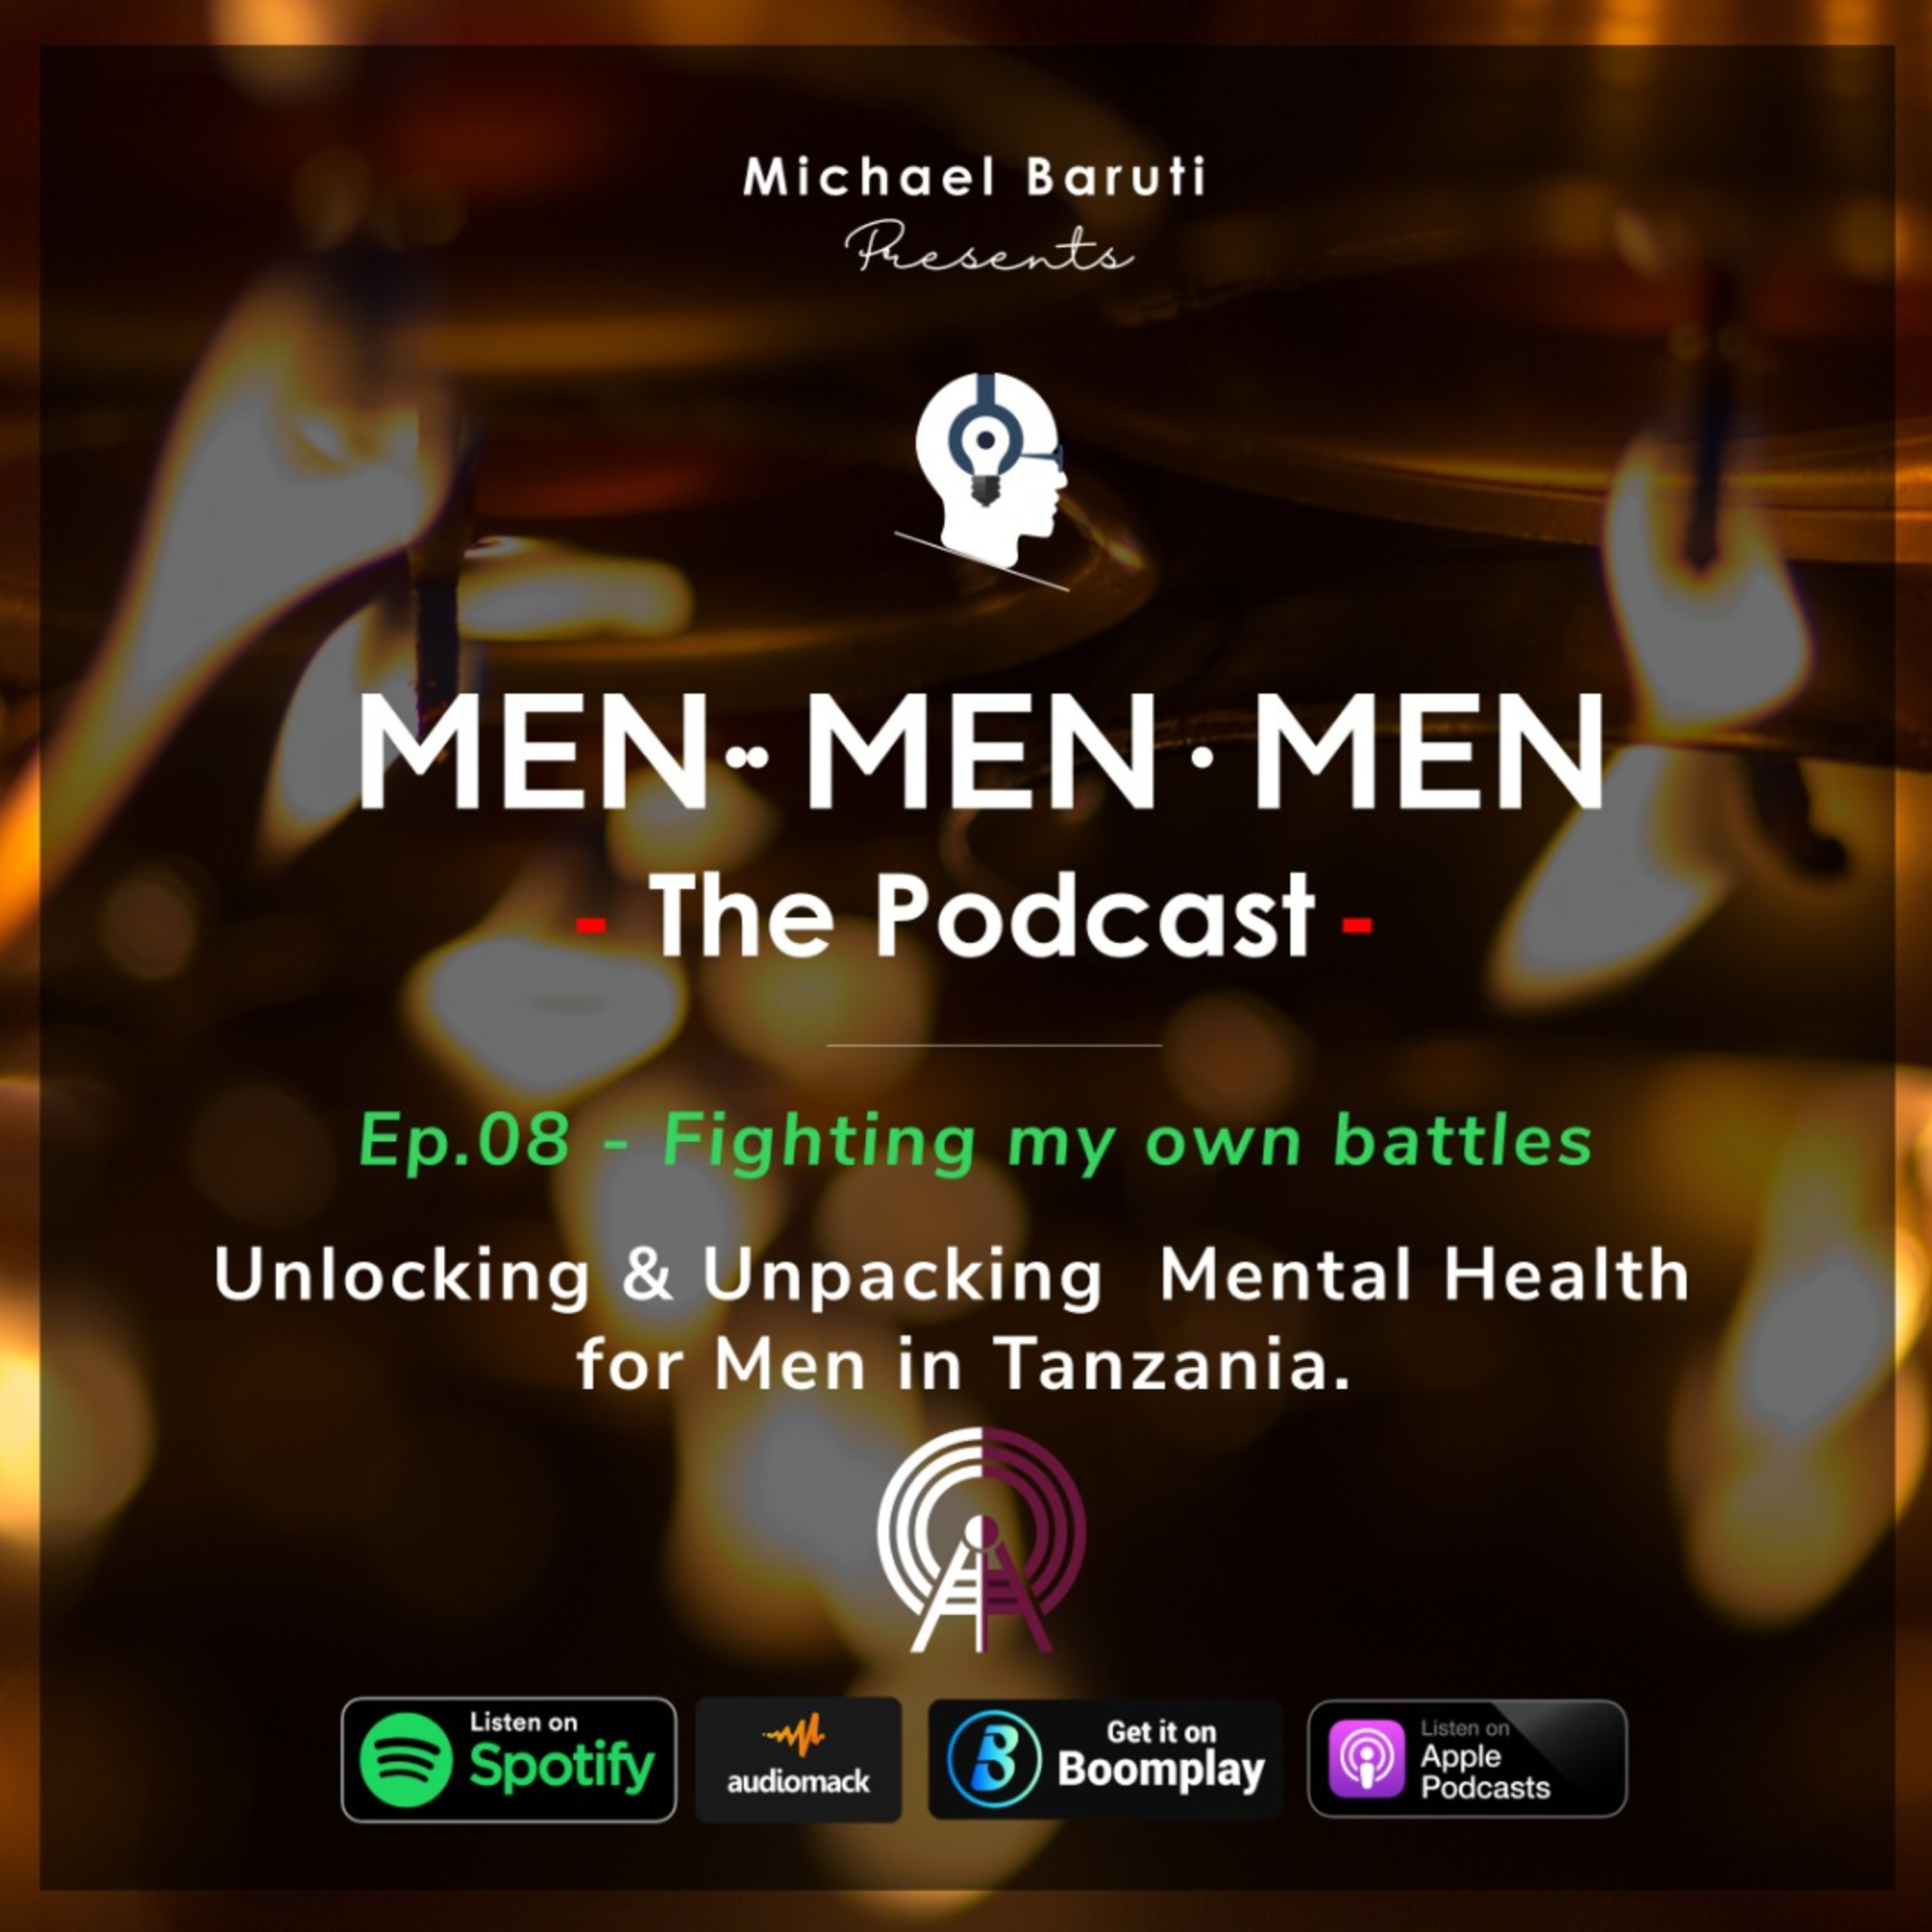 Men The Podcast - Ep 8 - Fighting my own battles